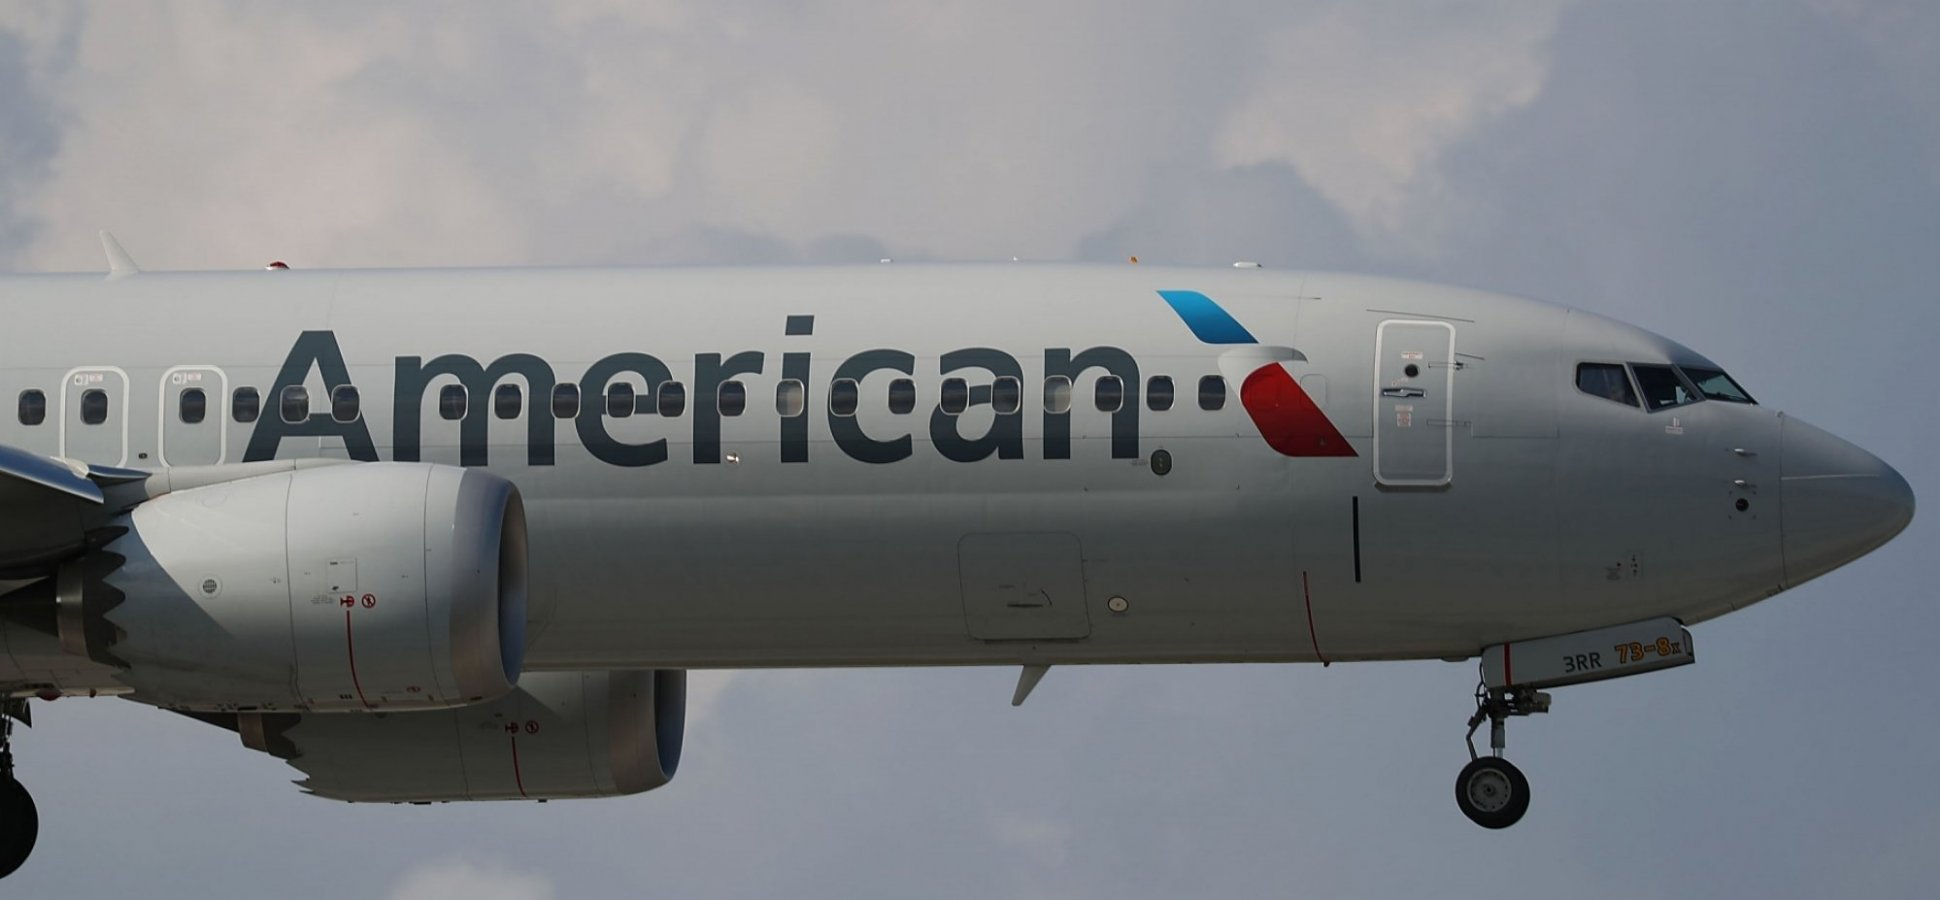 American Airlines Quietly Launched a Brand New Plane Last Week. It's Just As Bad As the 737 MAX